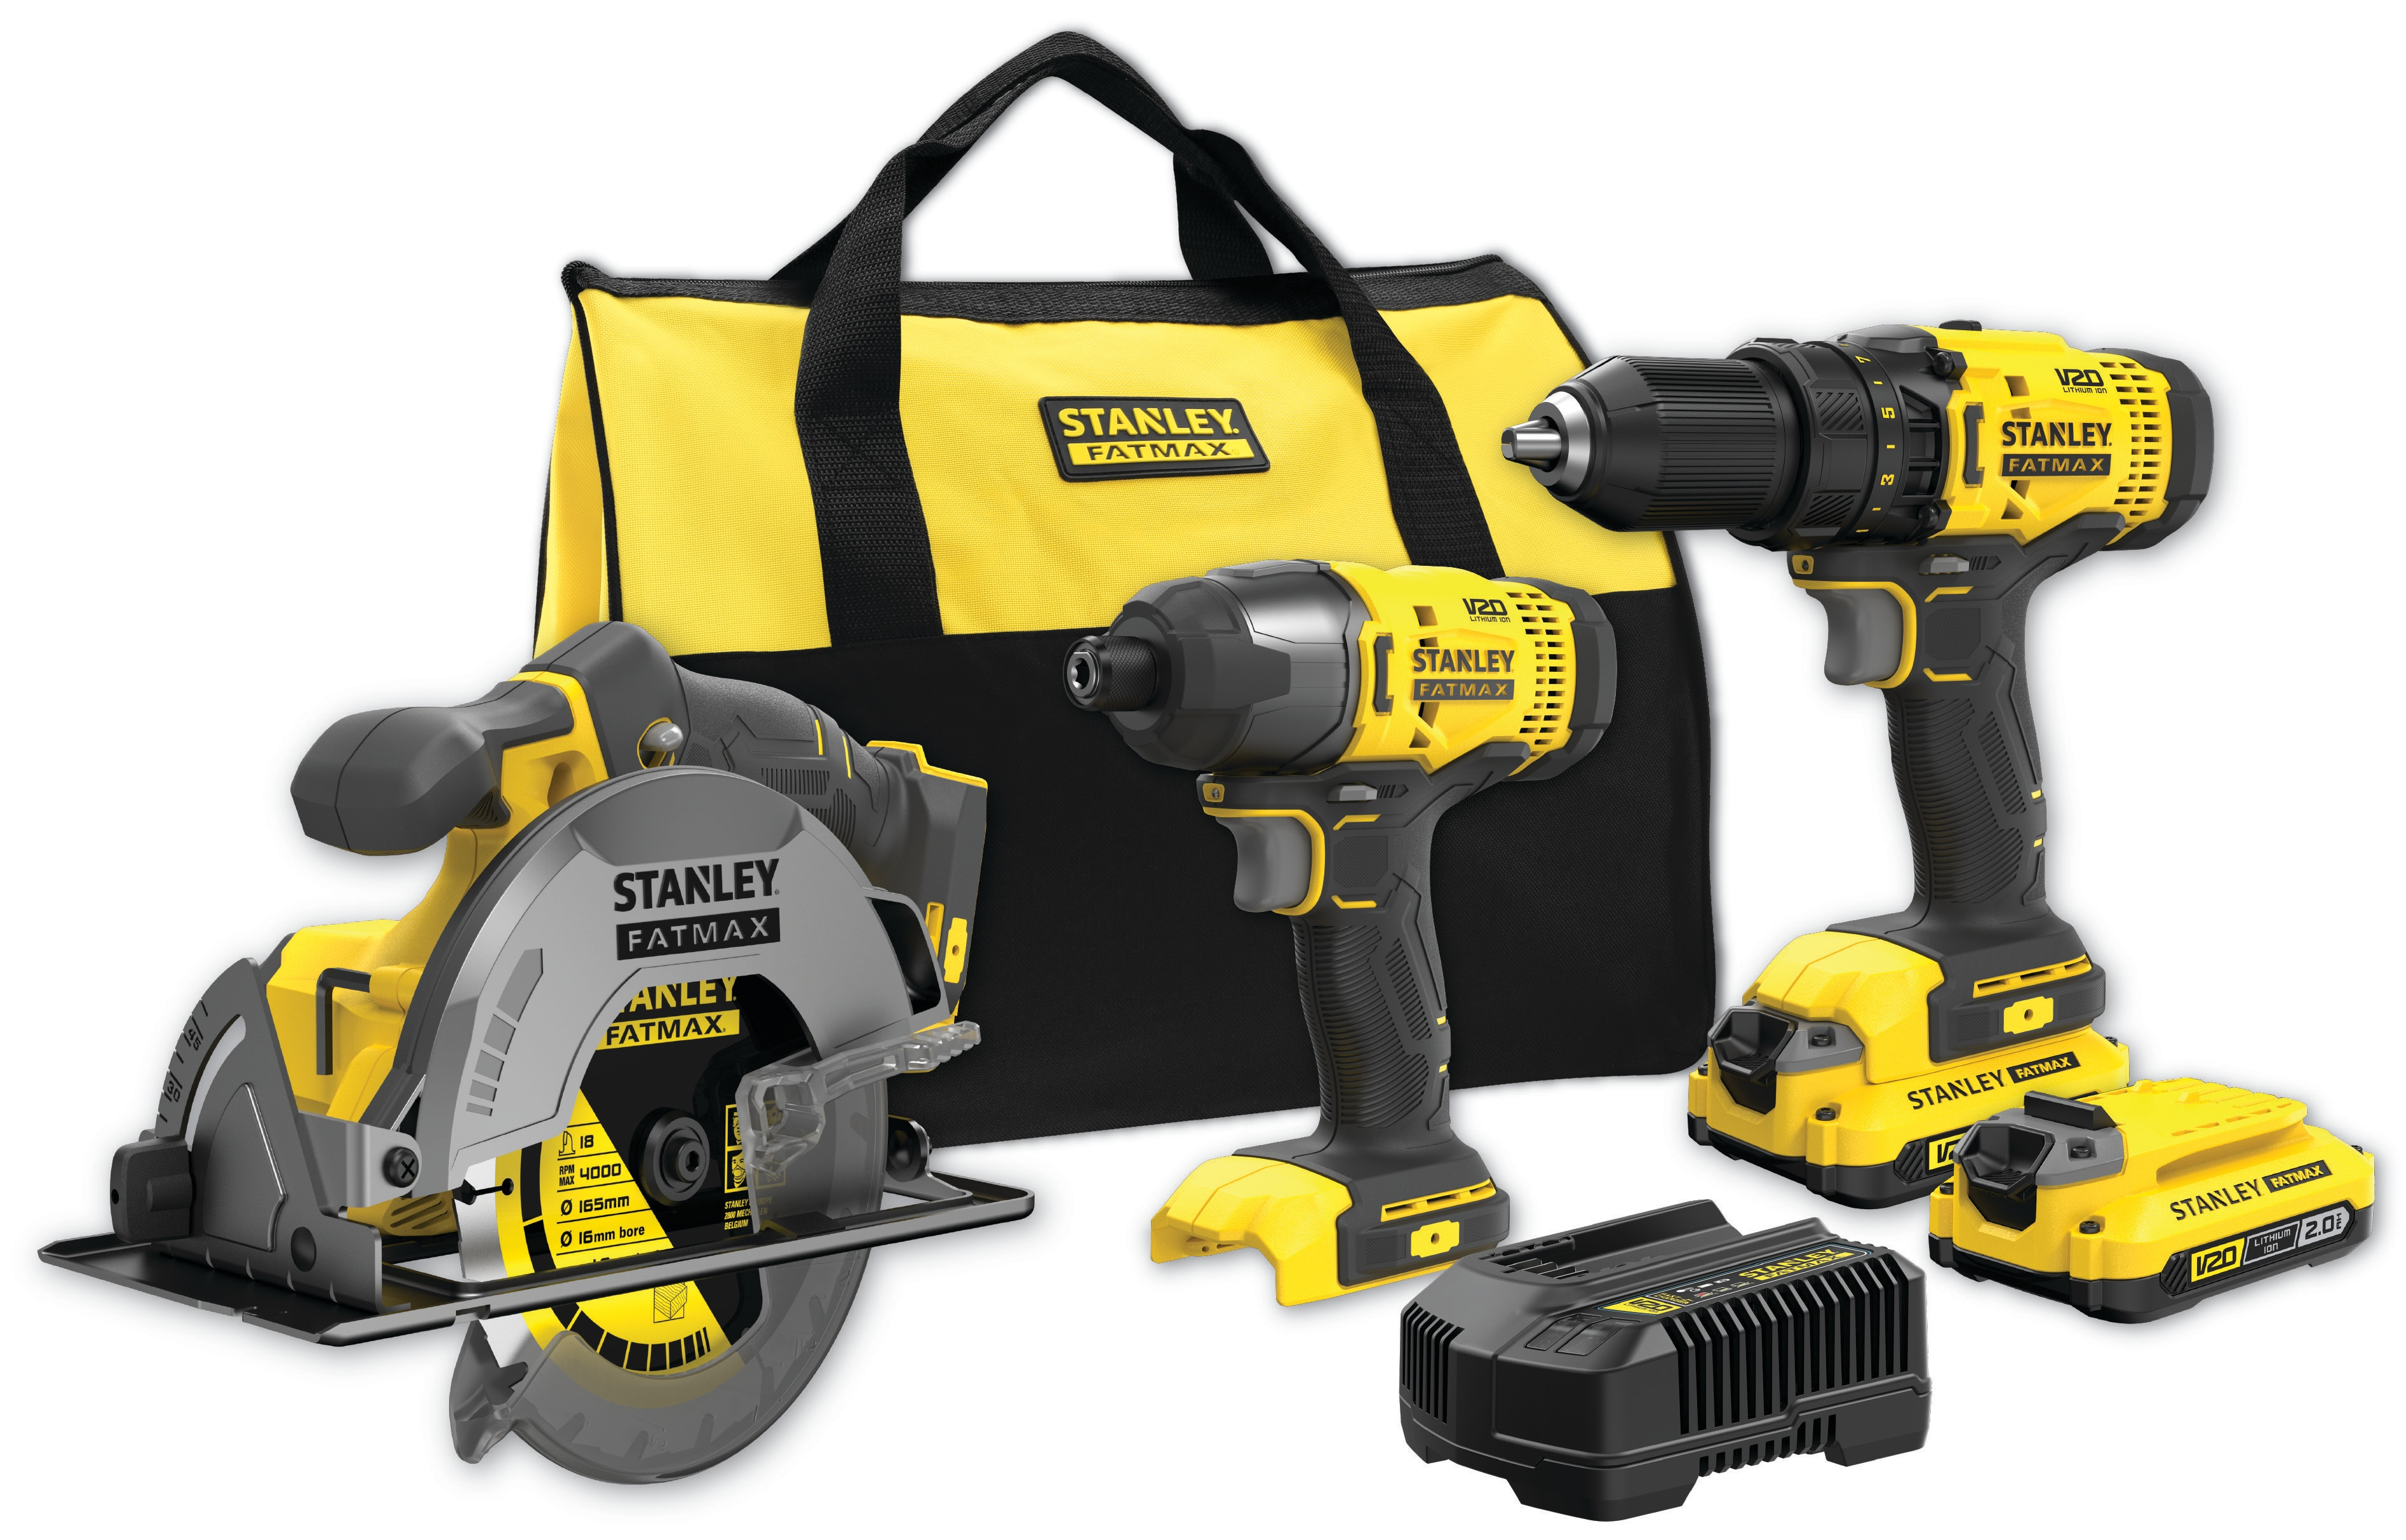 18V STANLEY® FATMAX® V20 COMBO ΣΕΤ 3 ΤΕΜΑΧΙΩΝ ΜΕ 2 X 2.0AH ΜΠΑΤΑΡΙΕΣ ΚΑΙ ΜΑΛΑΚΗ ΤΣΑΝΤΑ